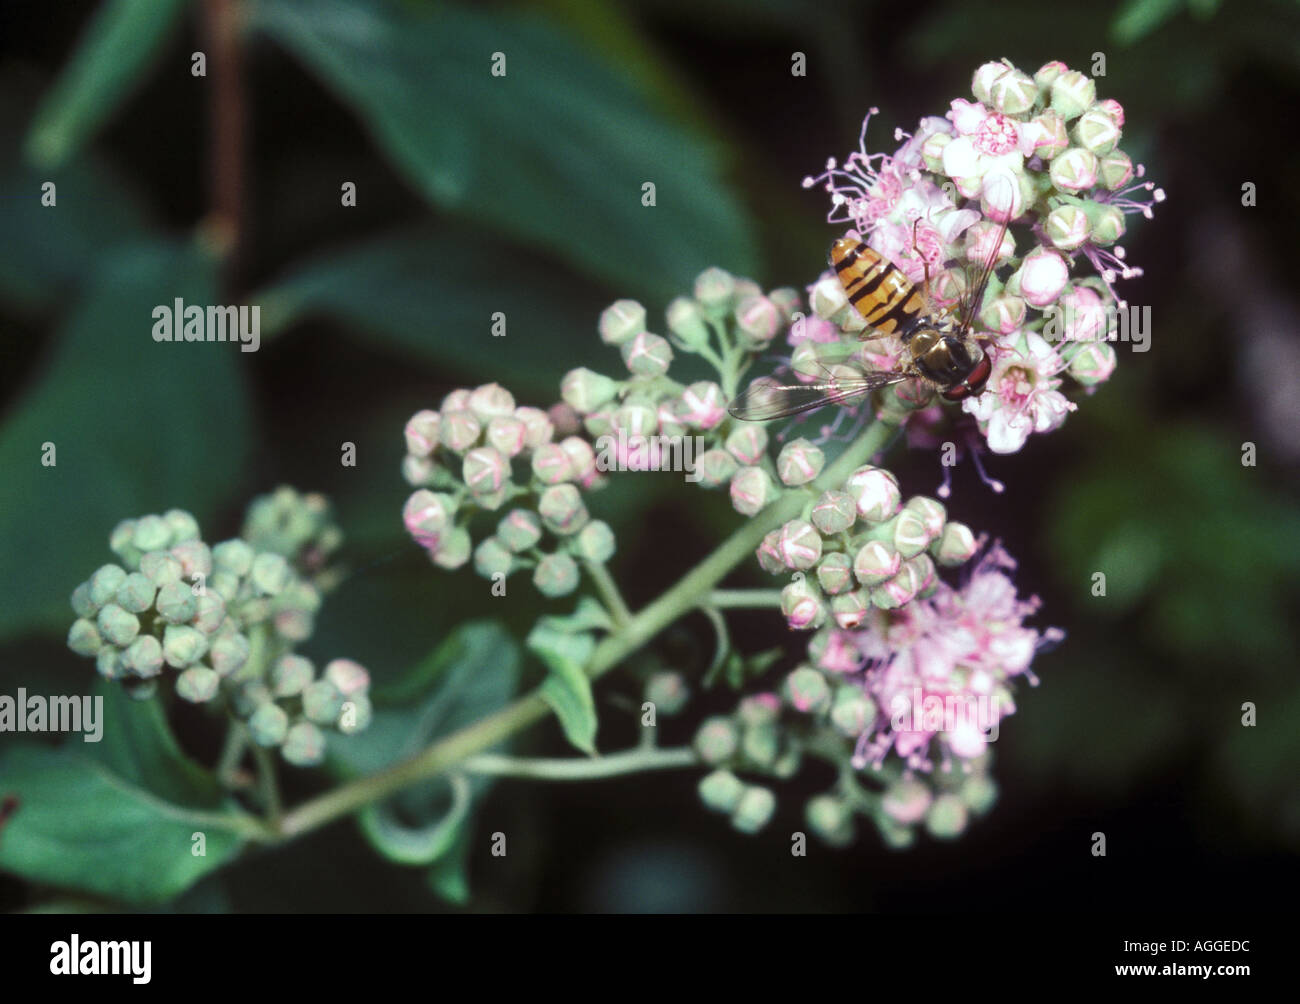 hover fly on flower Stock Photo